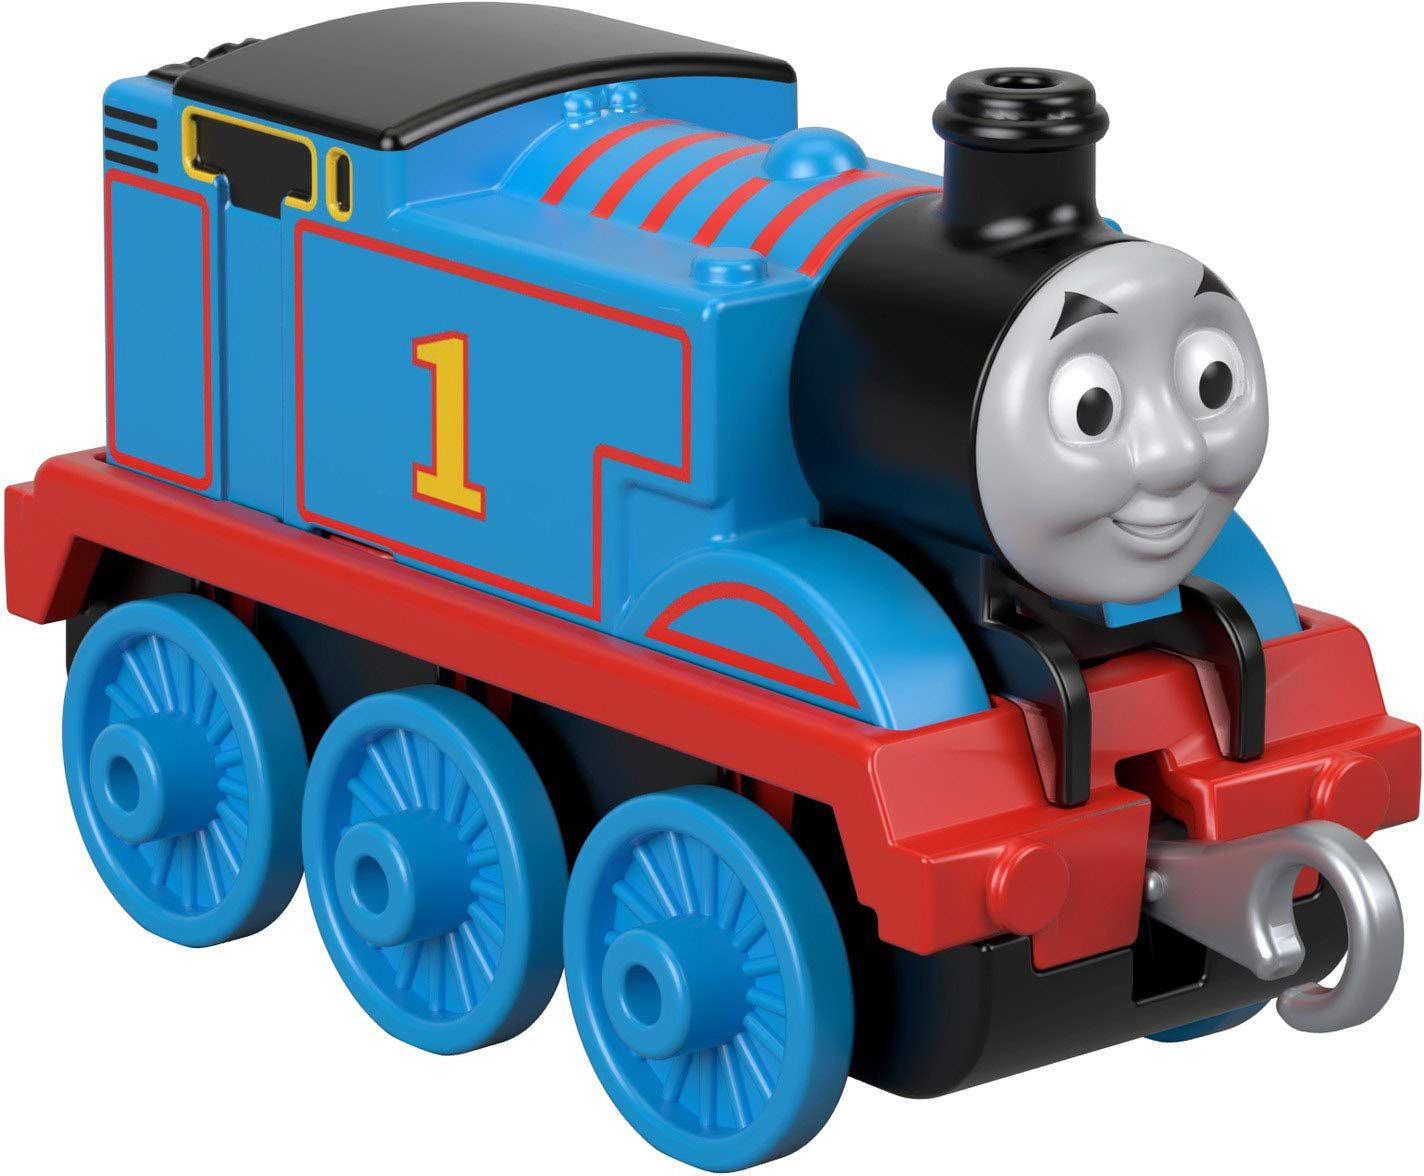 Детска играчка Fisher Price Thomas & Friends - Томас - 1